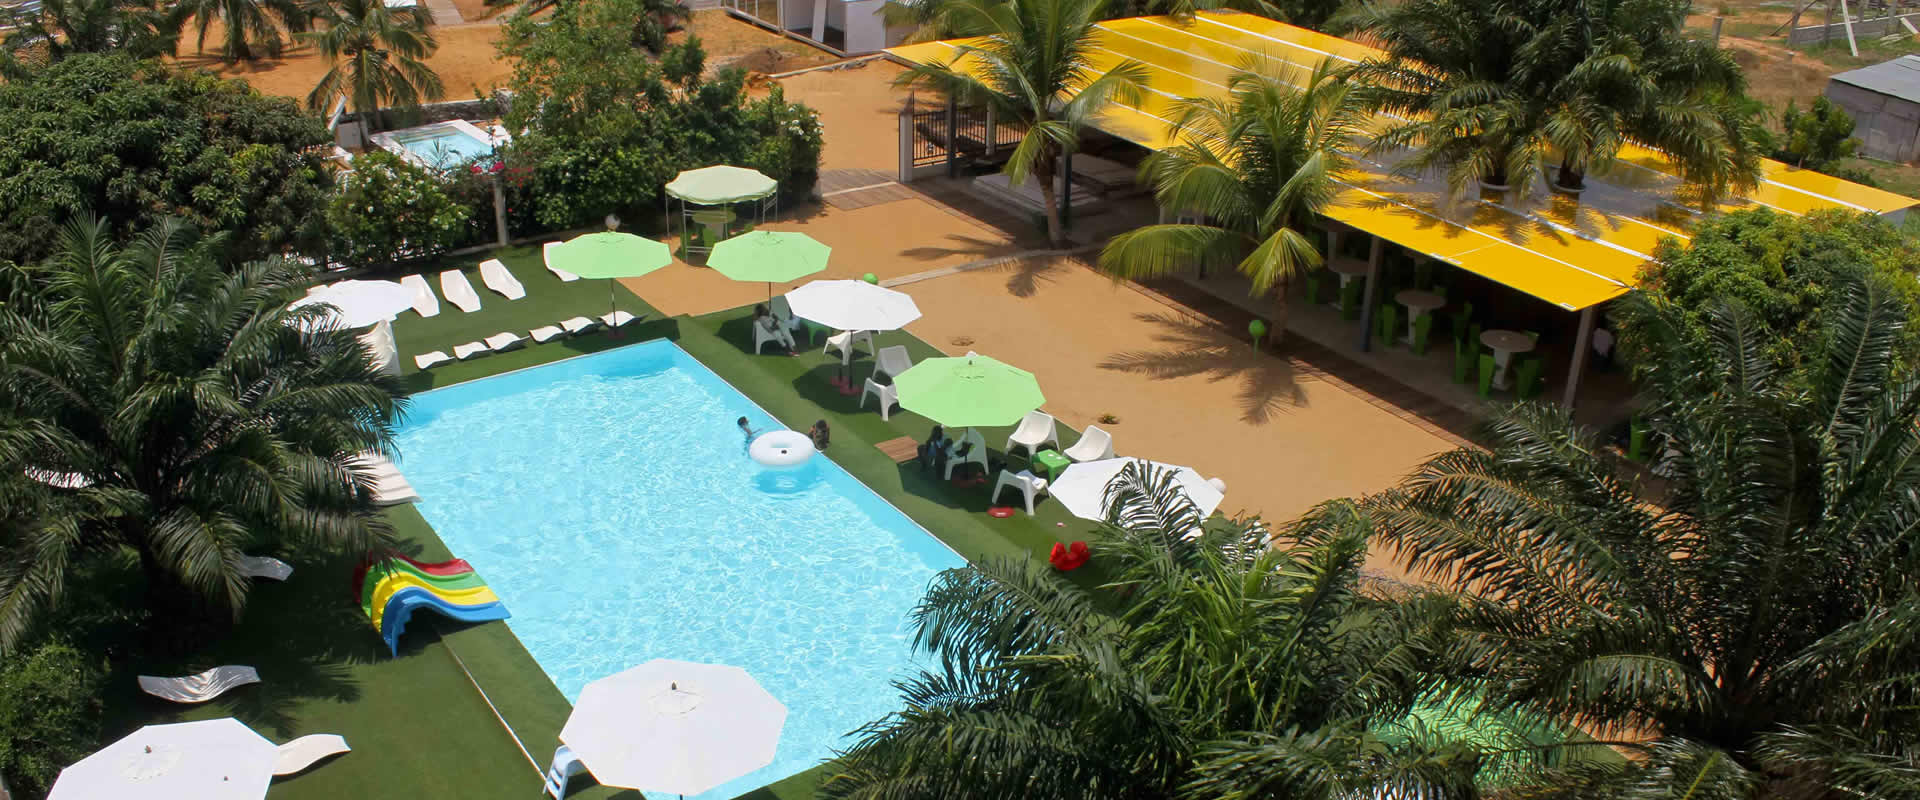 Business - Hôtel Olodge Africa Lomé Togo